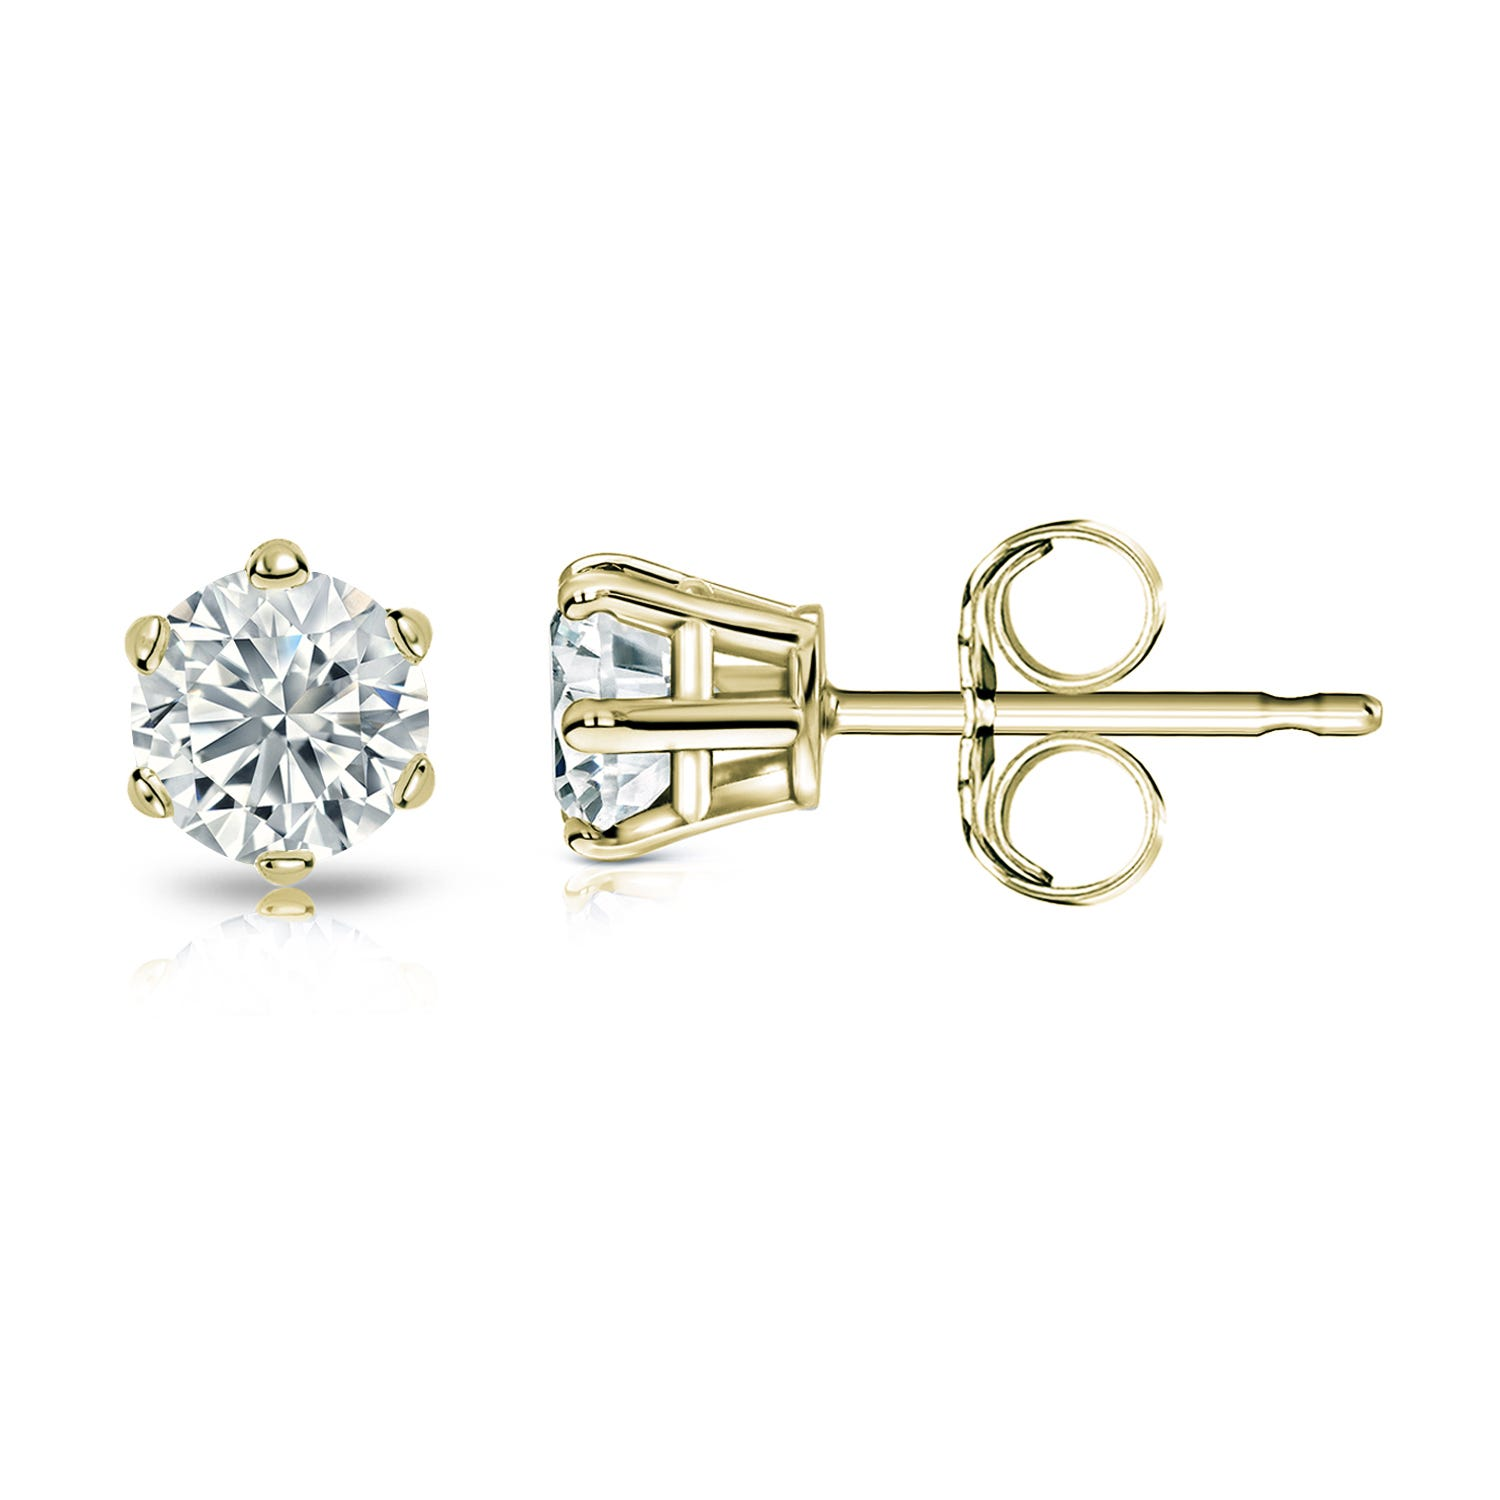 Round Diamond 1/2ctw. (IJ-VS2) Solitaire Stud 6-Prong Earrings in 14K Yellow Gold